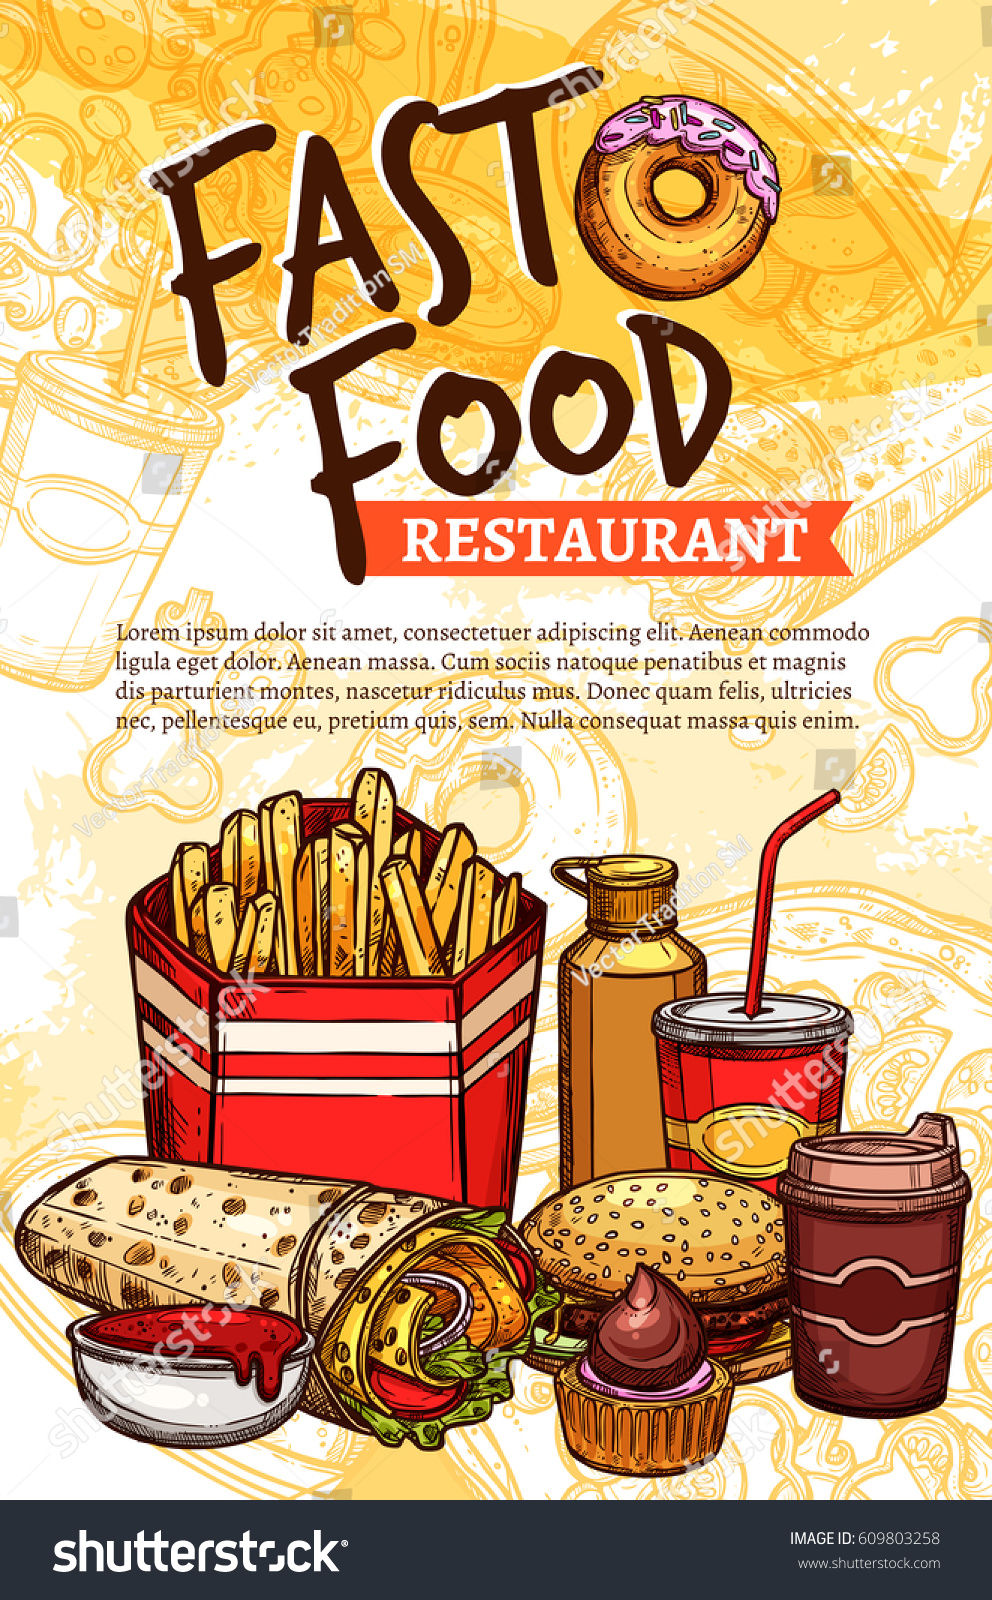 fast food sketch poster vector fastfood stock vector 609803258